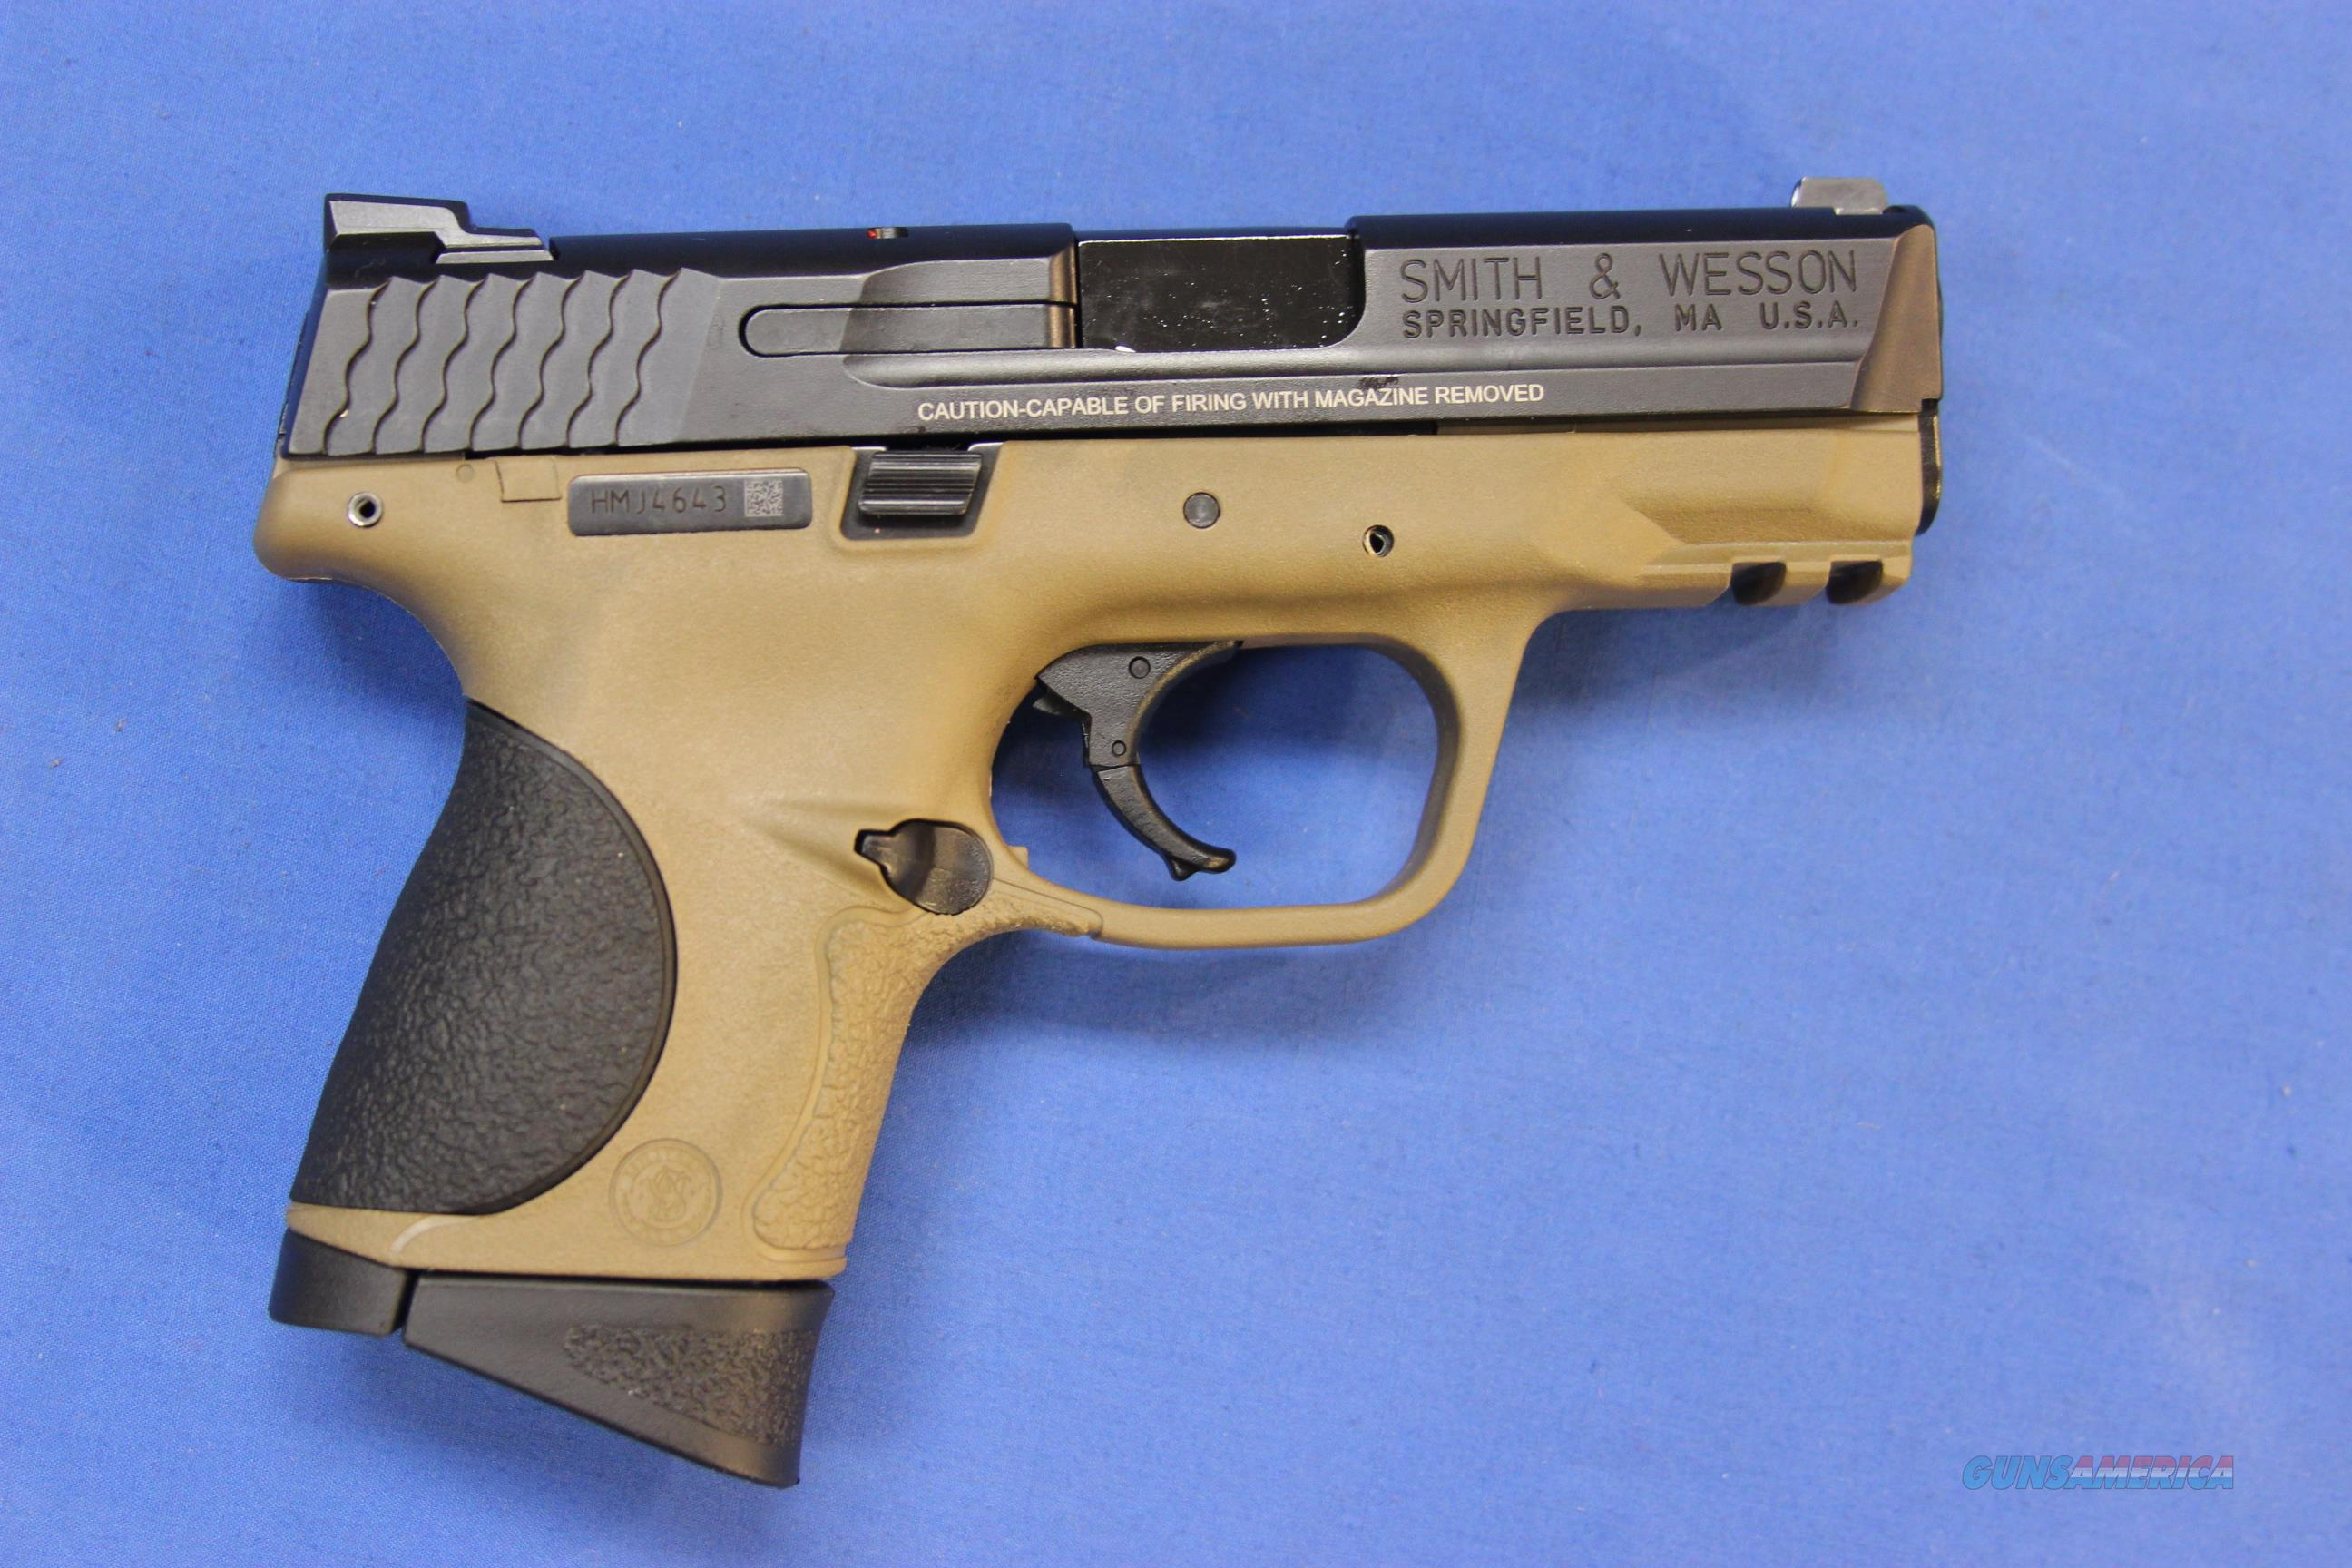 SMITH & WESSON M&P9 COMPACT FDE 9mm - NEW!  Guns > Pistols > Smith & Wesson Pistols - Autos > Polymer Frame